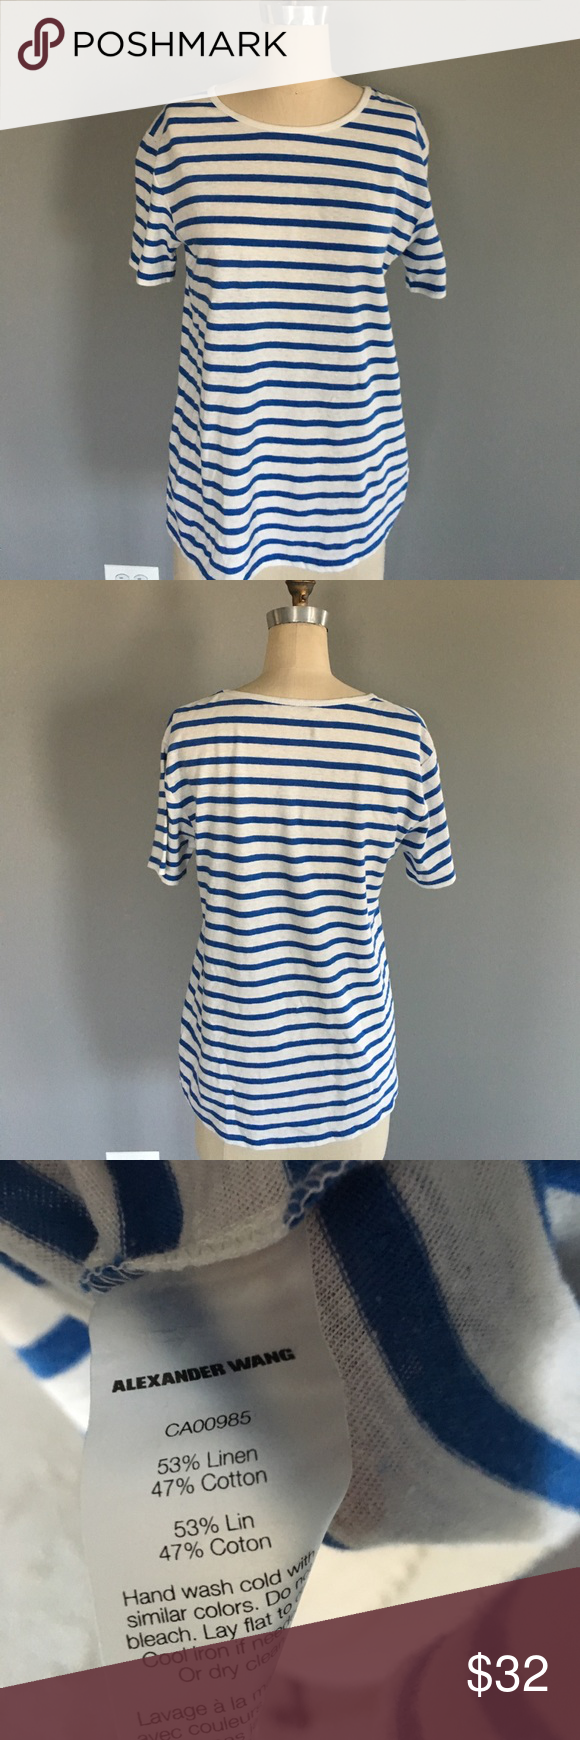 T by Alexander Wang Linen Blend Boyfriend TShirt Blue Striped Oversize Boyfriend Tee in a Linen/Cotton Blend. No Signs of Wear T by Alexander Wang Tops